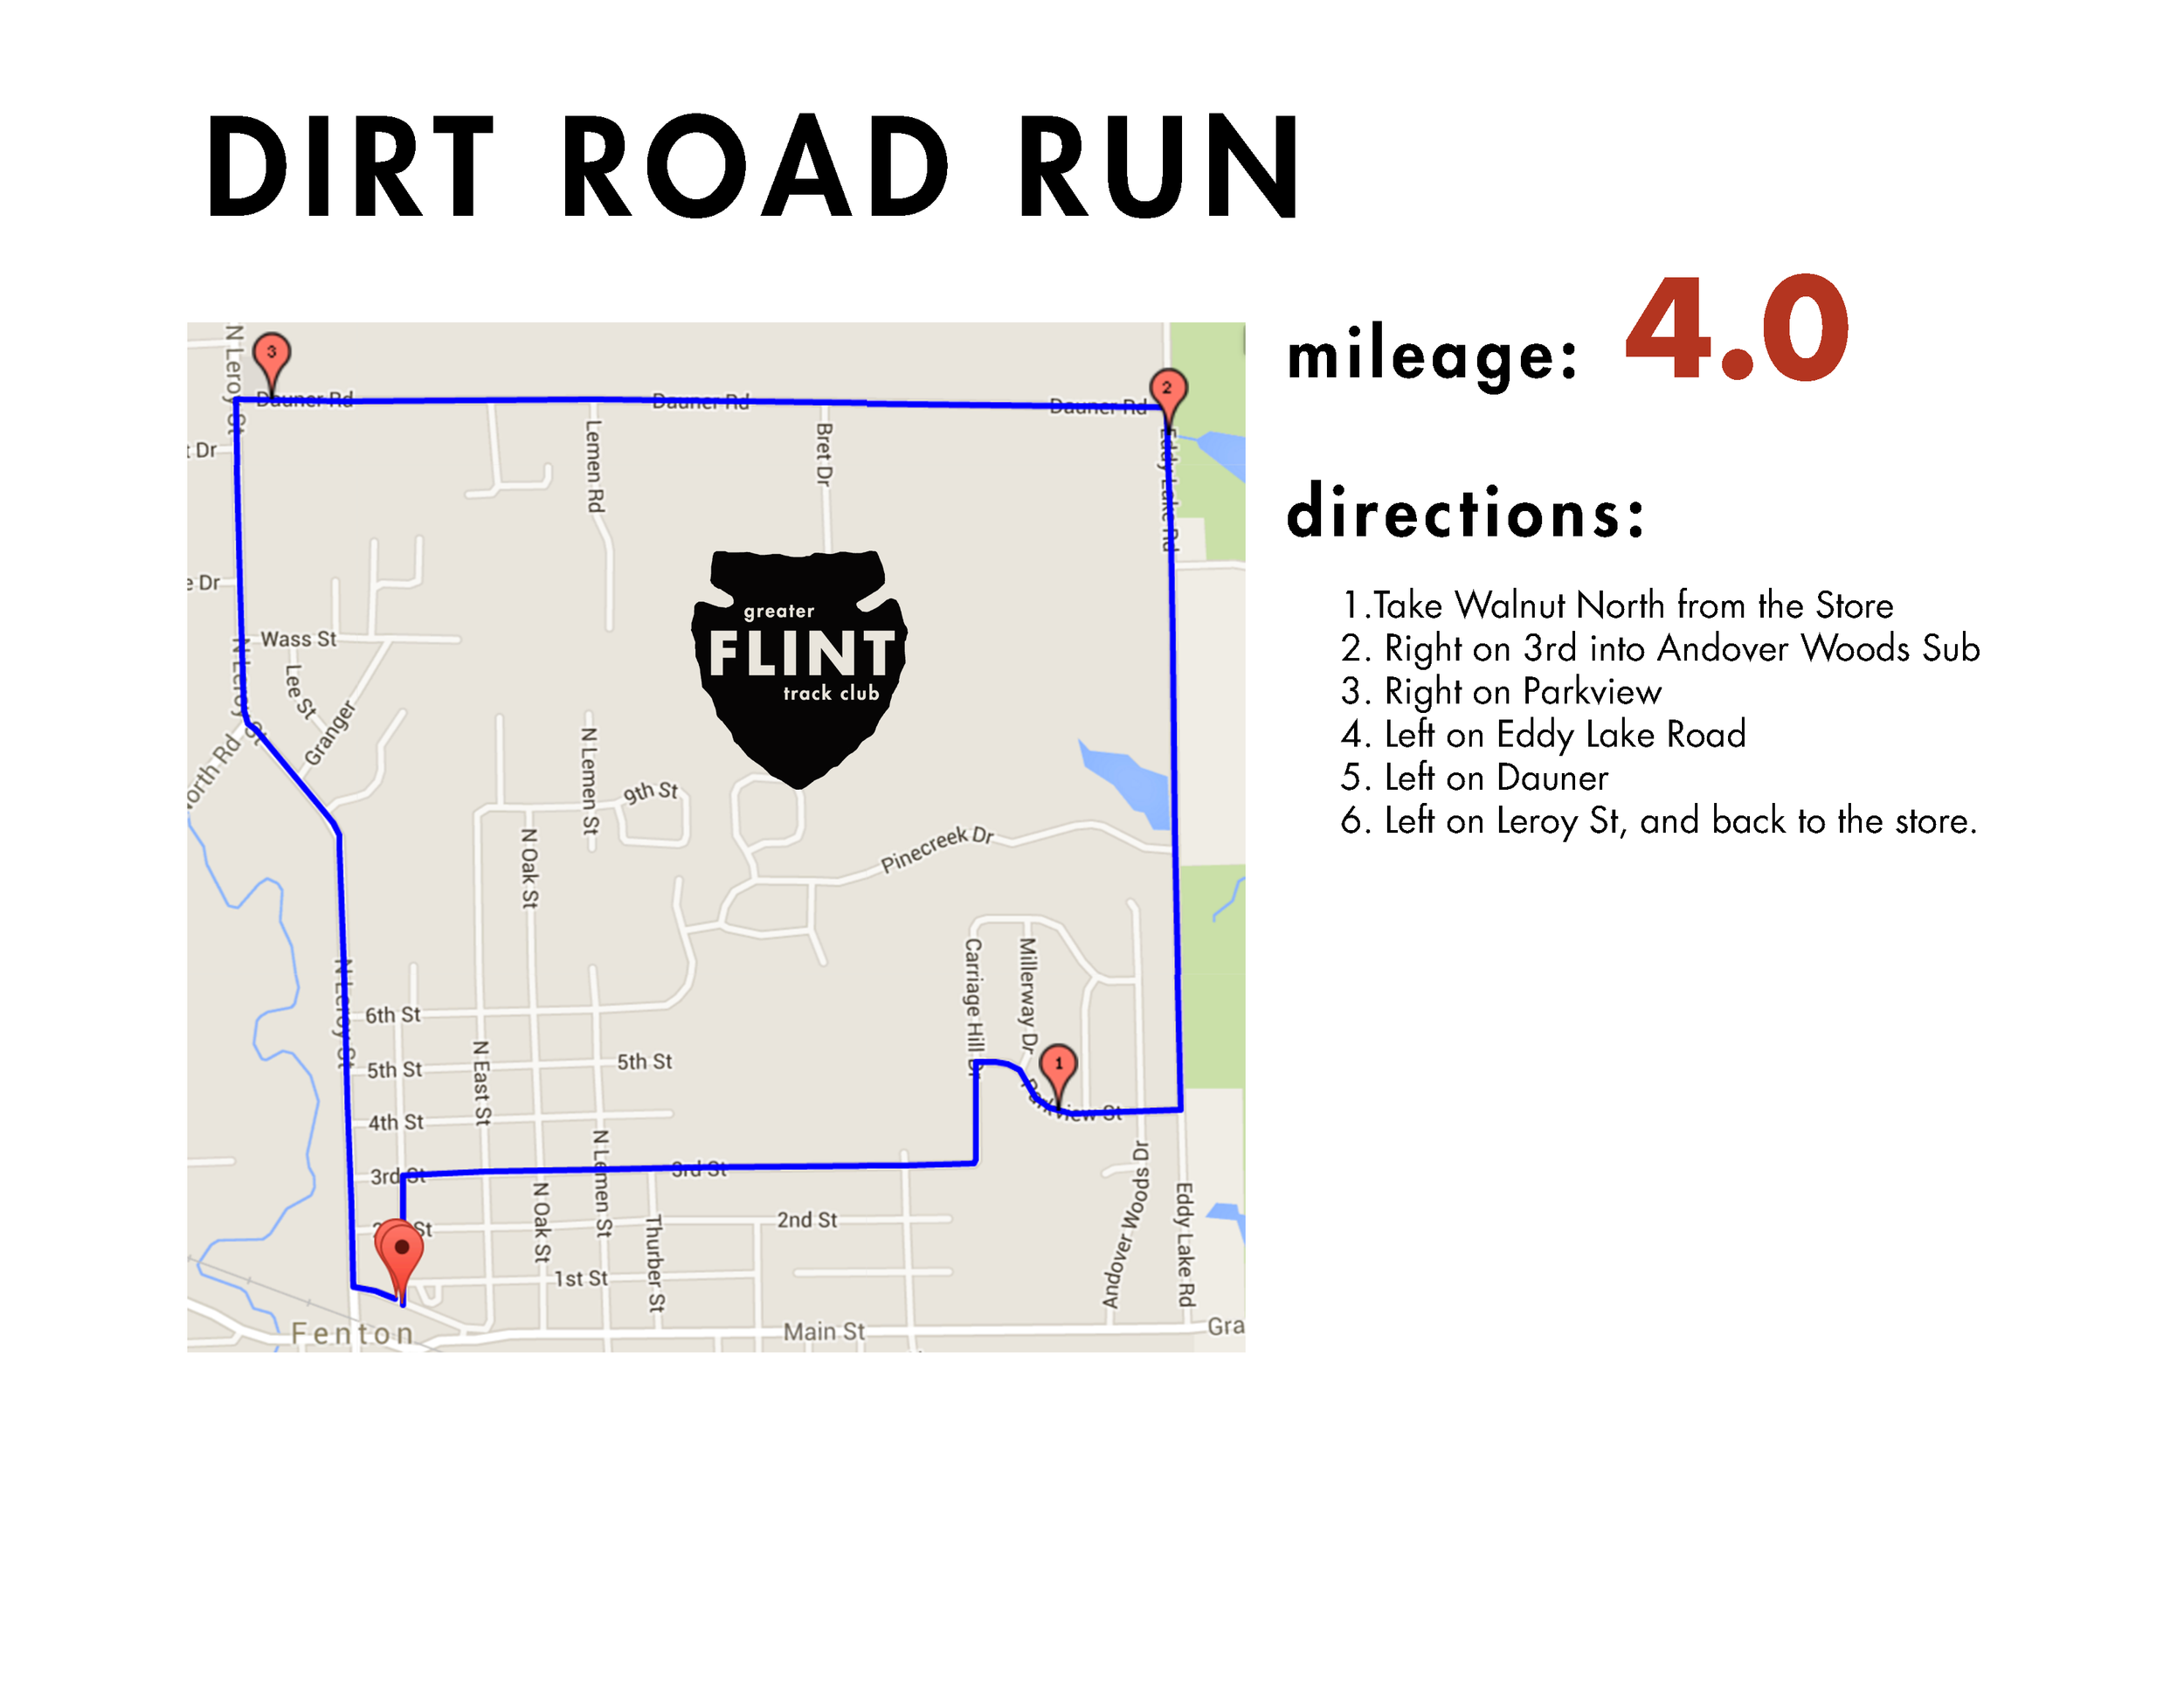 a classic 4 miler route. has a little of everything - pavement, dirt, and relatively flat. Also has easy access to seven lakes state park and dauner haus trail system for those trail dogs wanting to get some extra-curricular activities along the route.